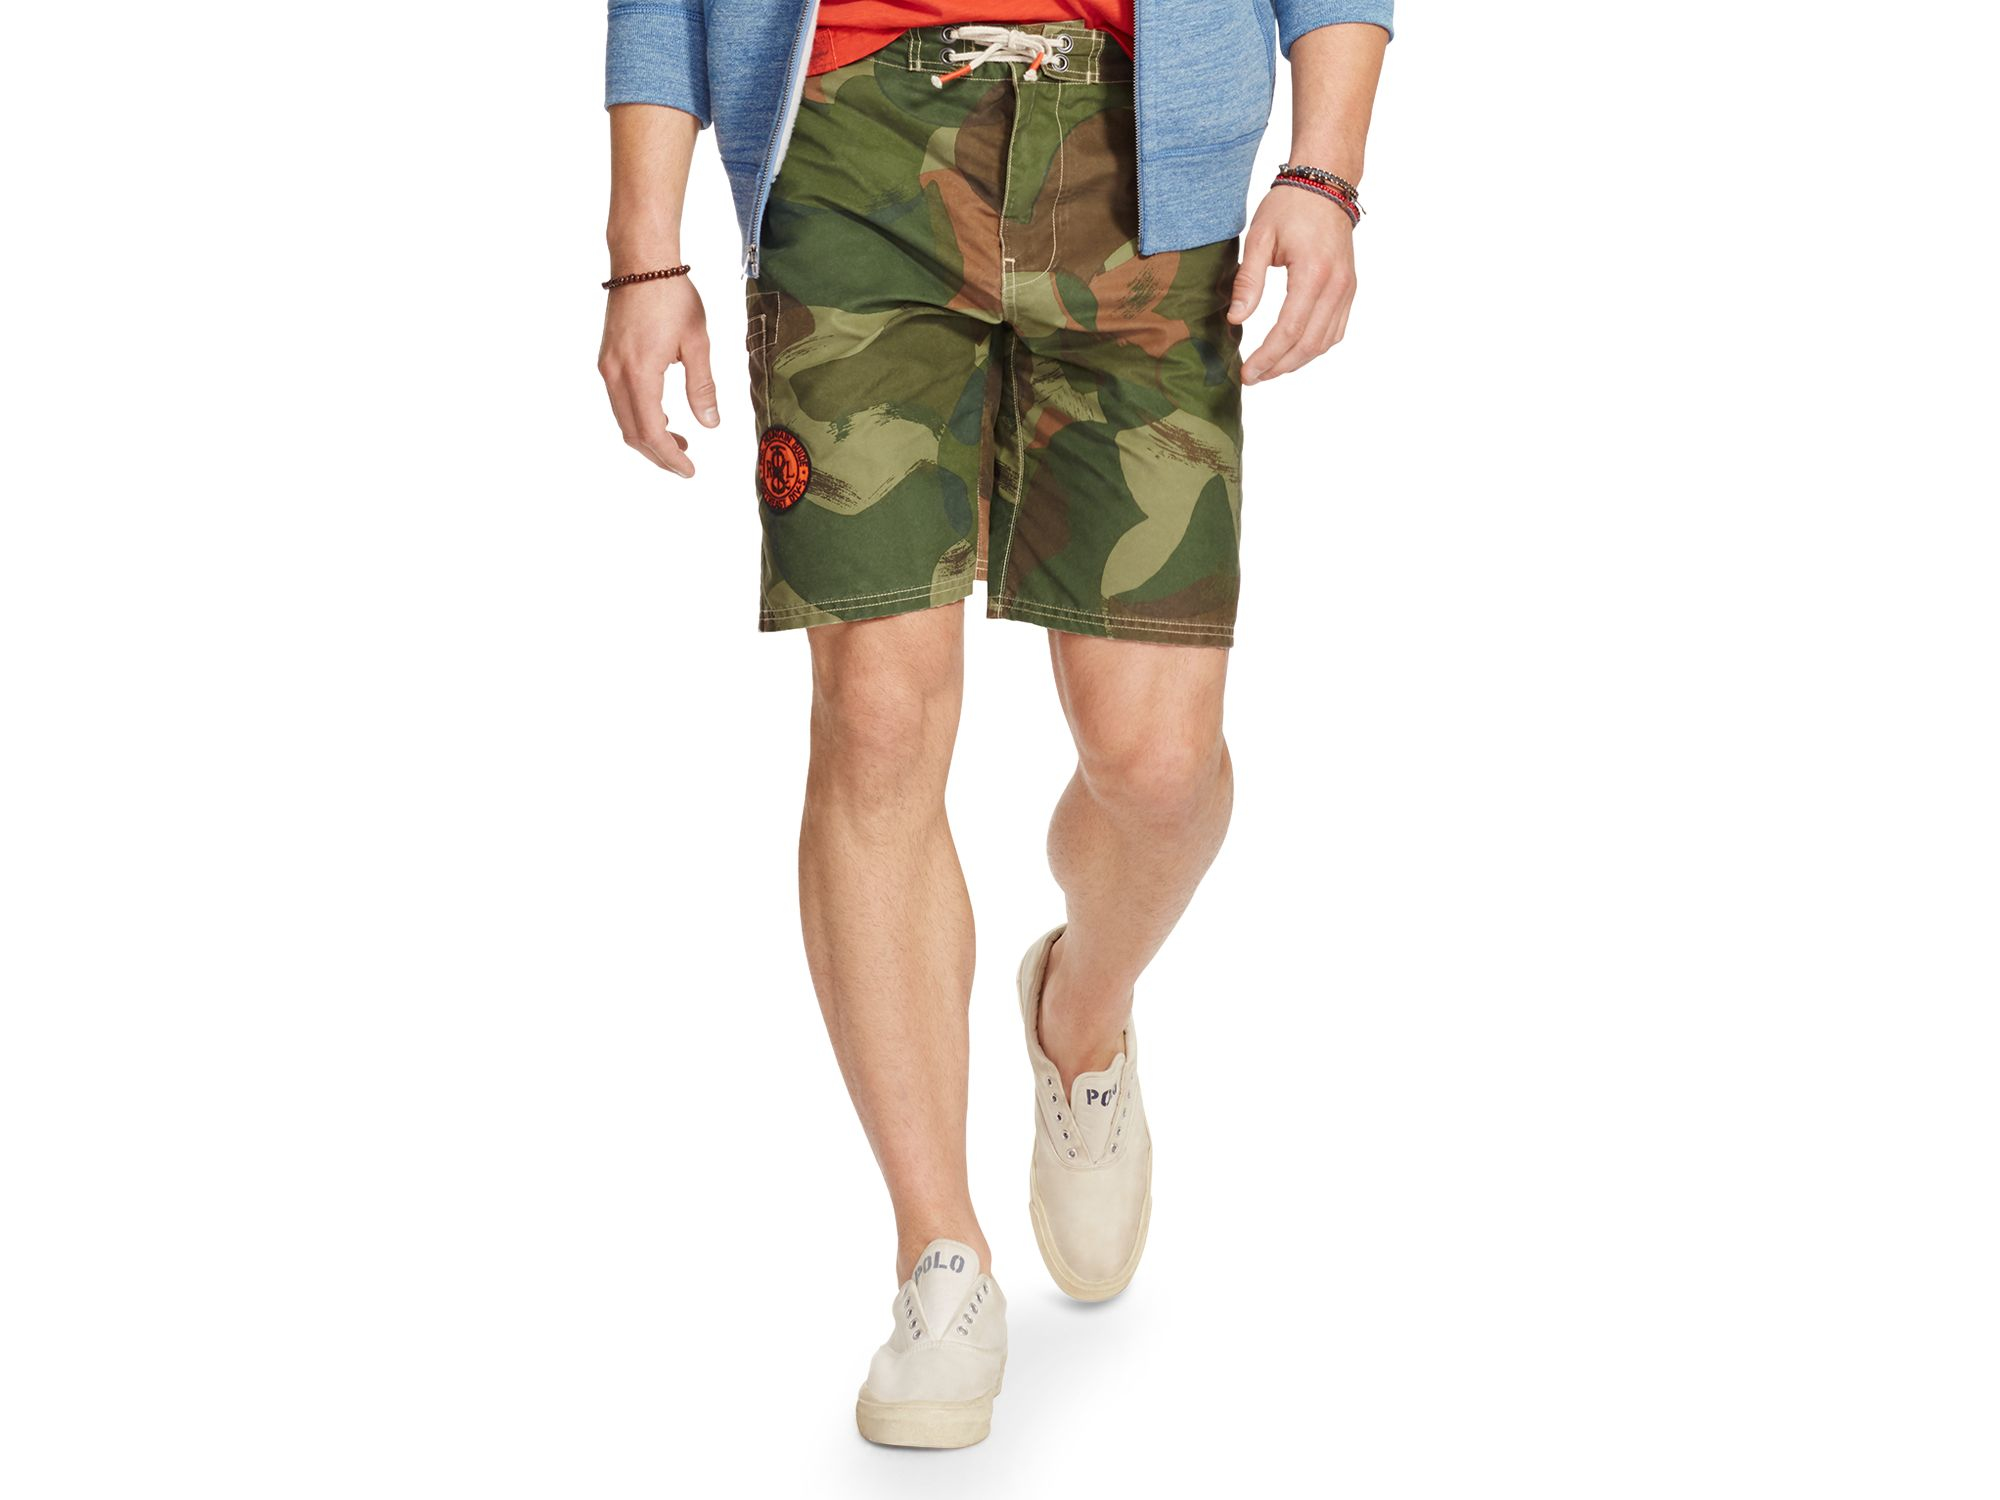 6771d02ee0 Polo Ralph Lauren Camouflage Shelter Island Swim Trunks in Green for ...